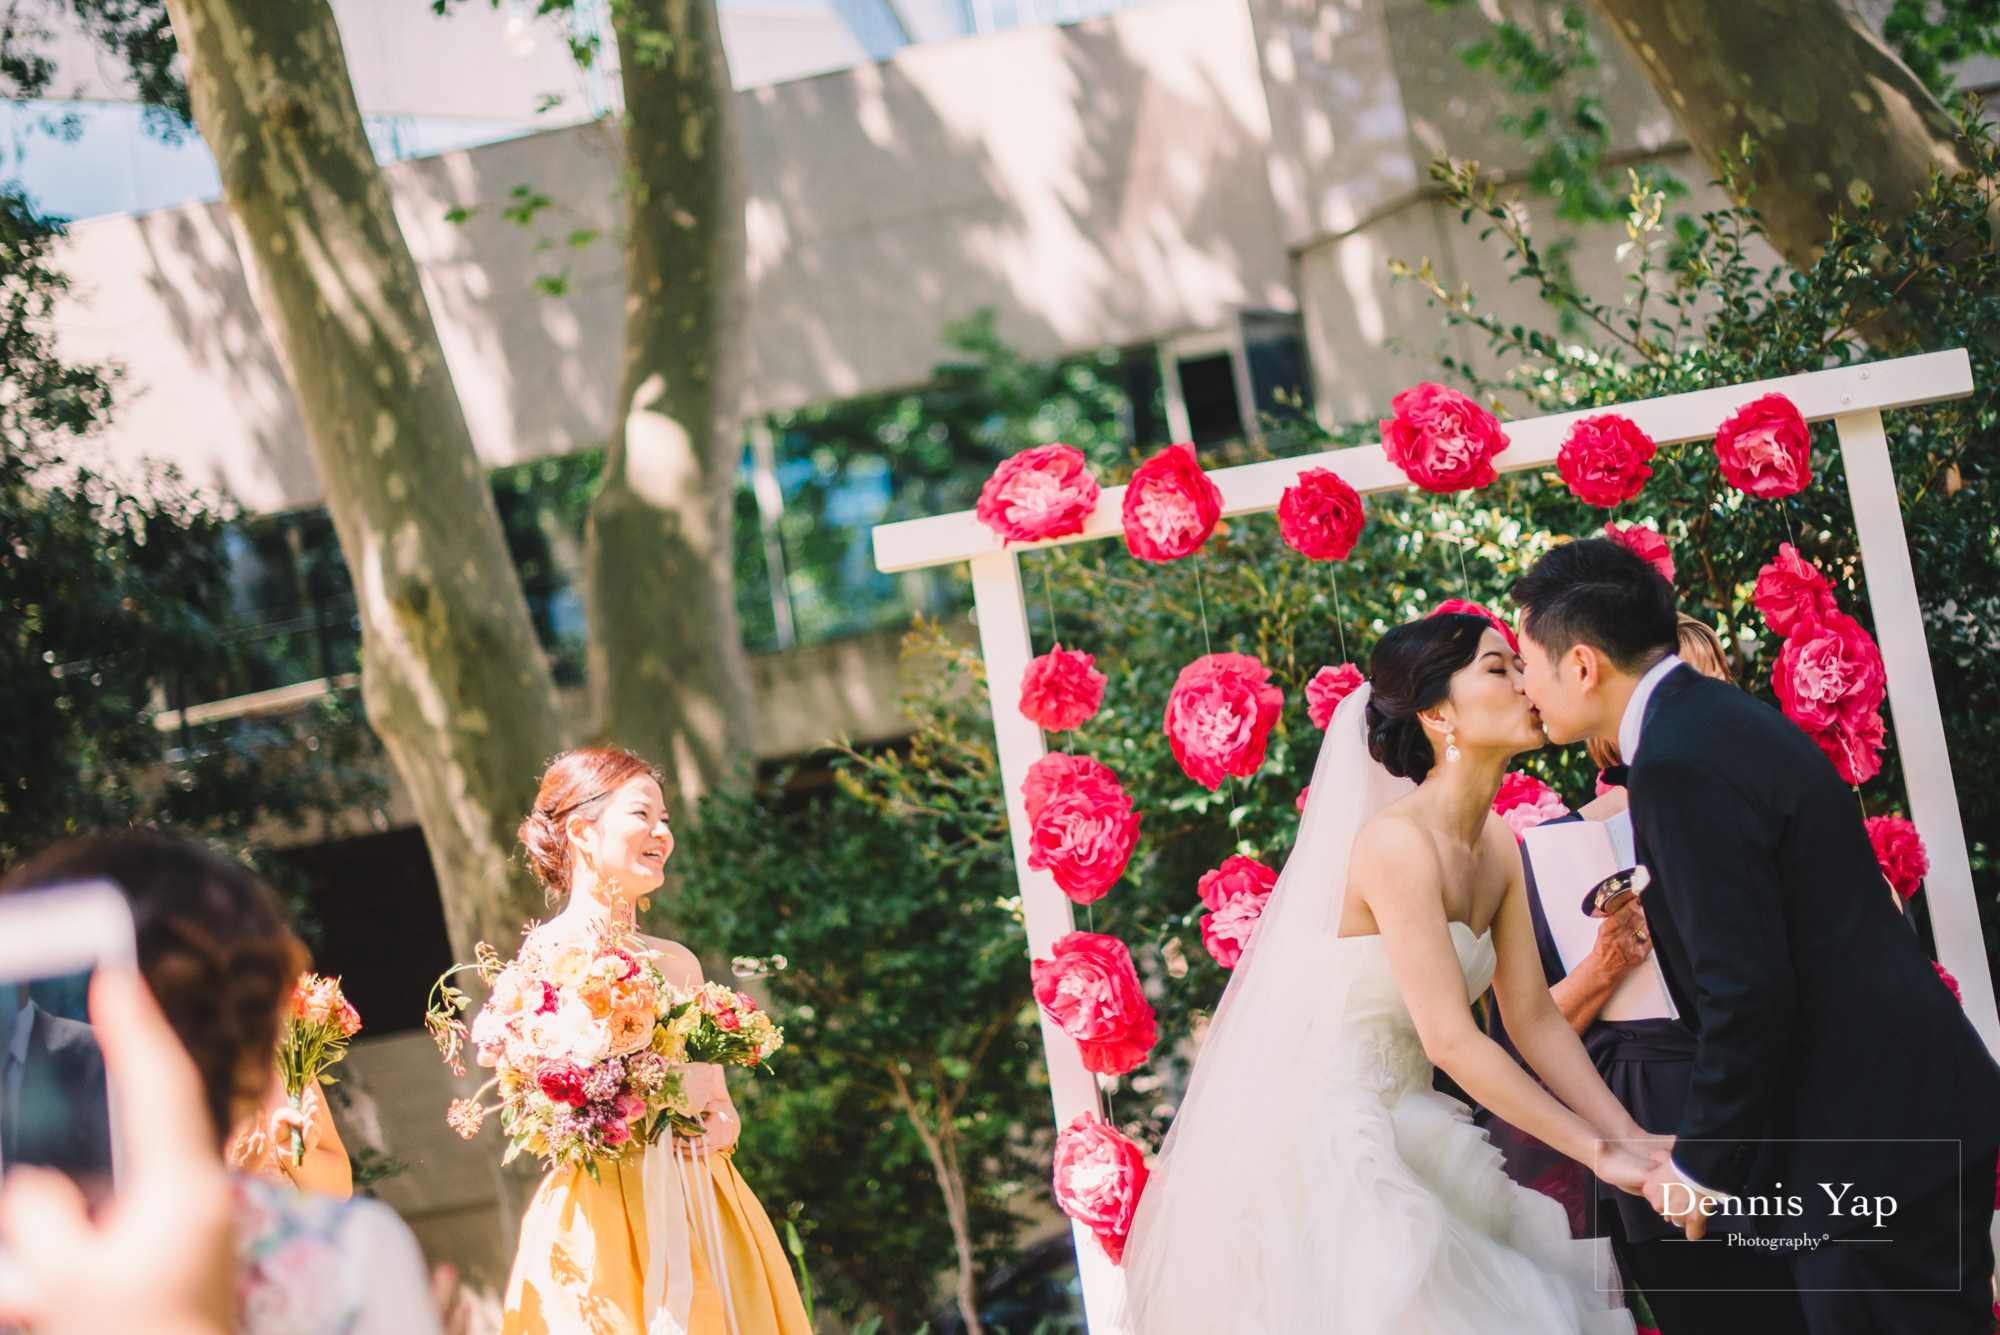 ethan janet perth wedding reception and garden ceremony in lamonts dennis yap photography-26.jpg